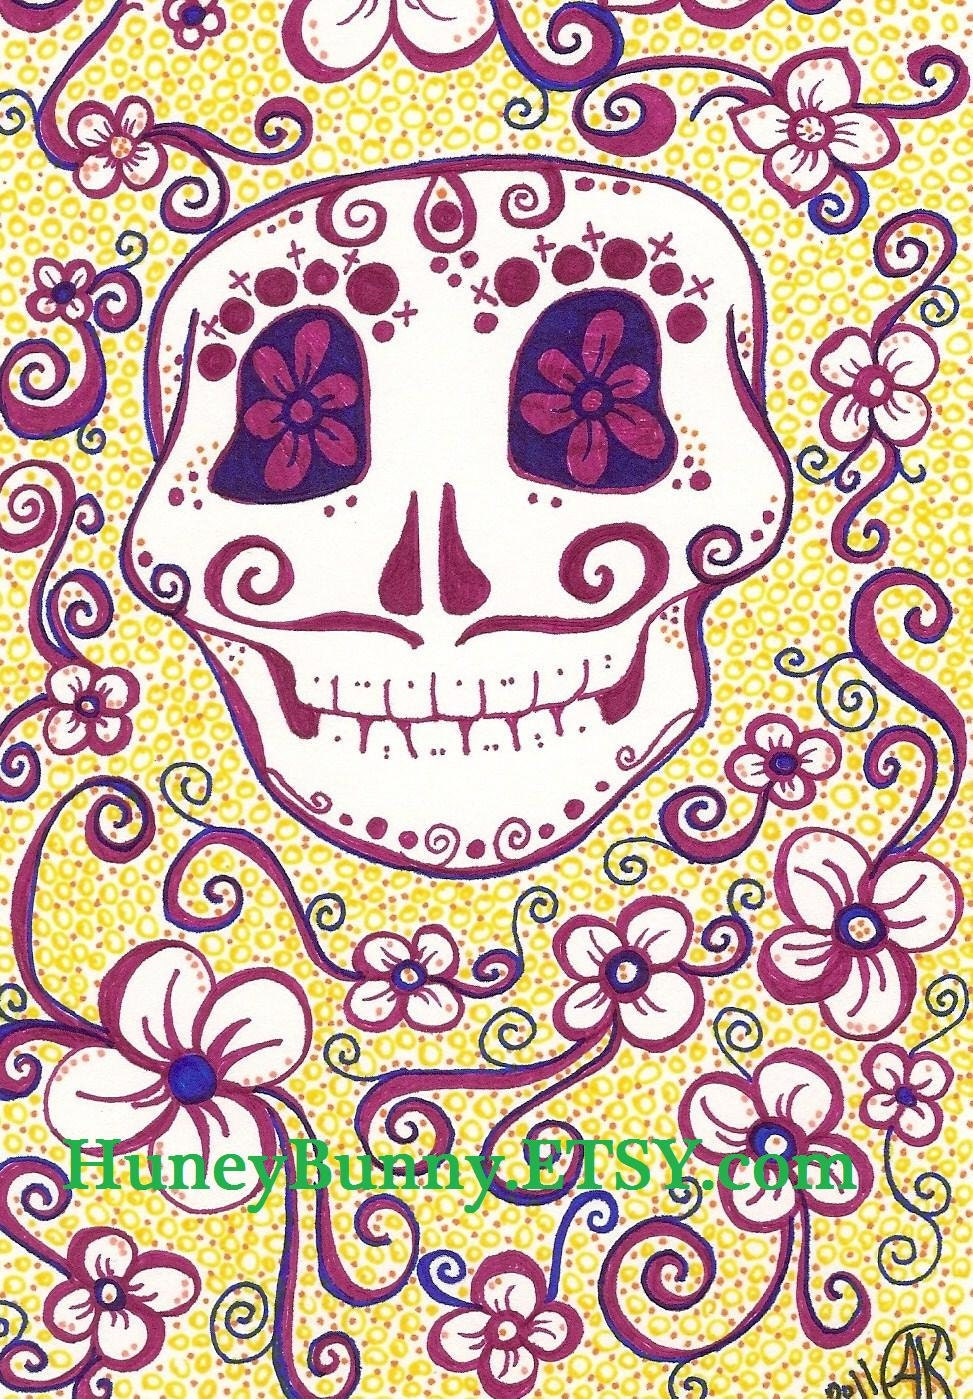 Original DaY Of The Dead Drawing. Sugar Skull artwork with Sharpies. Dia De Los Muertos.